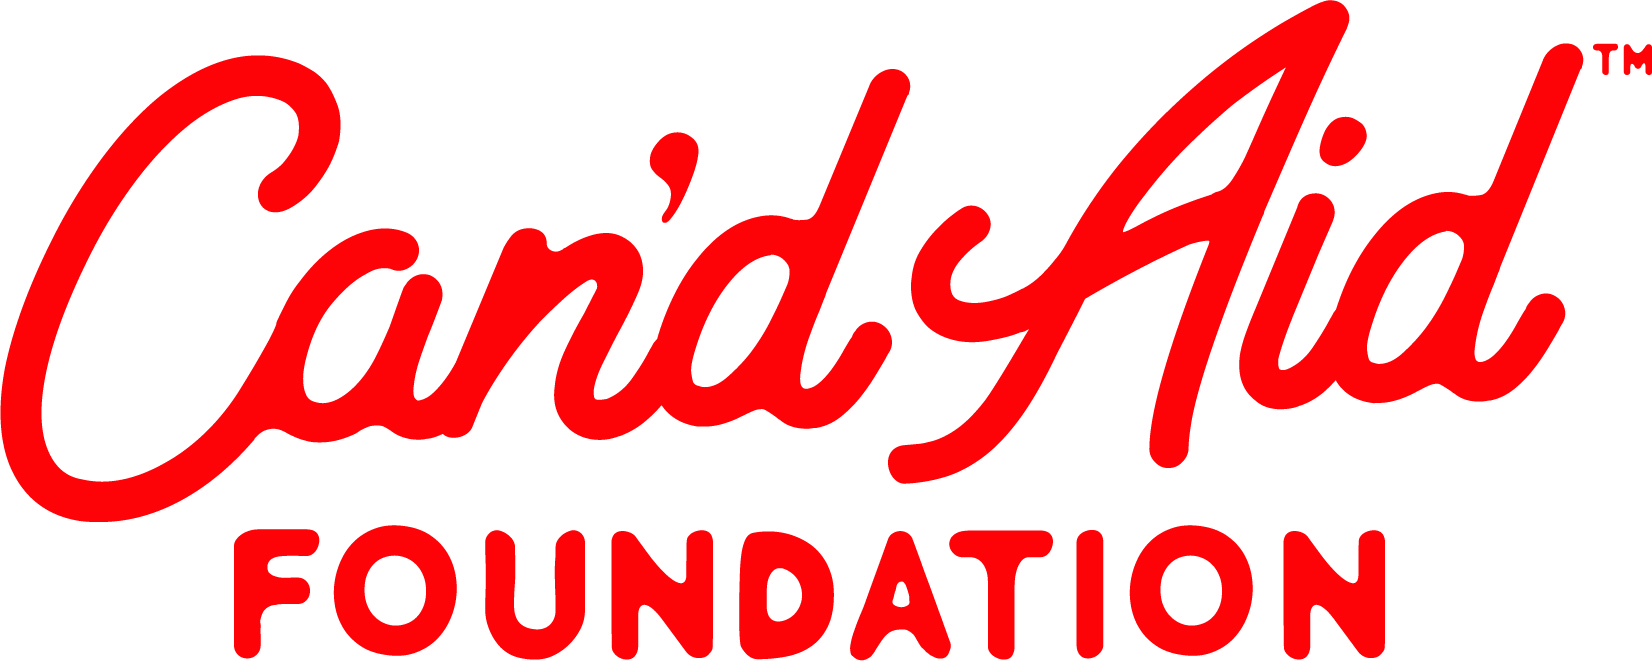 cand-aid-logo-red.jpg